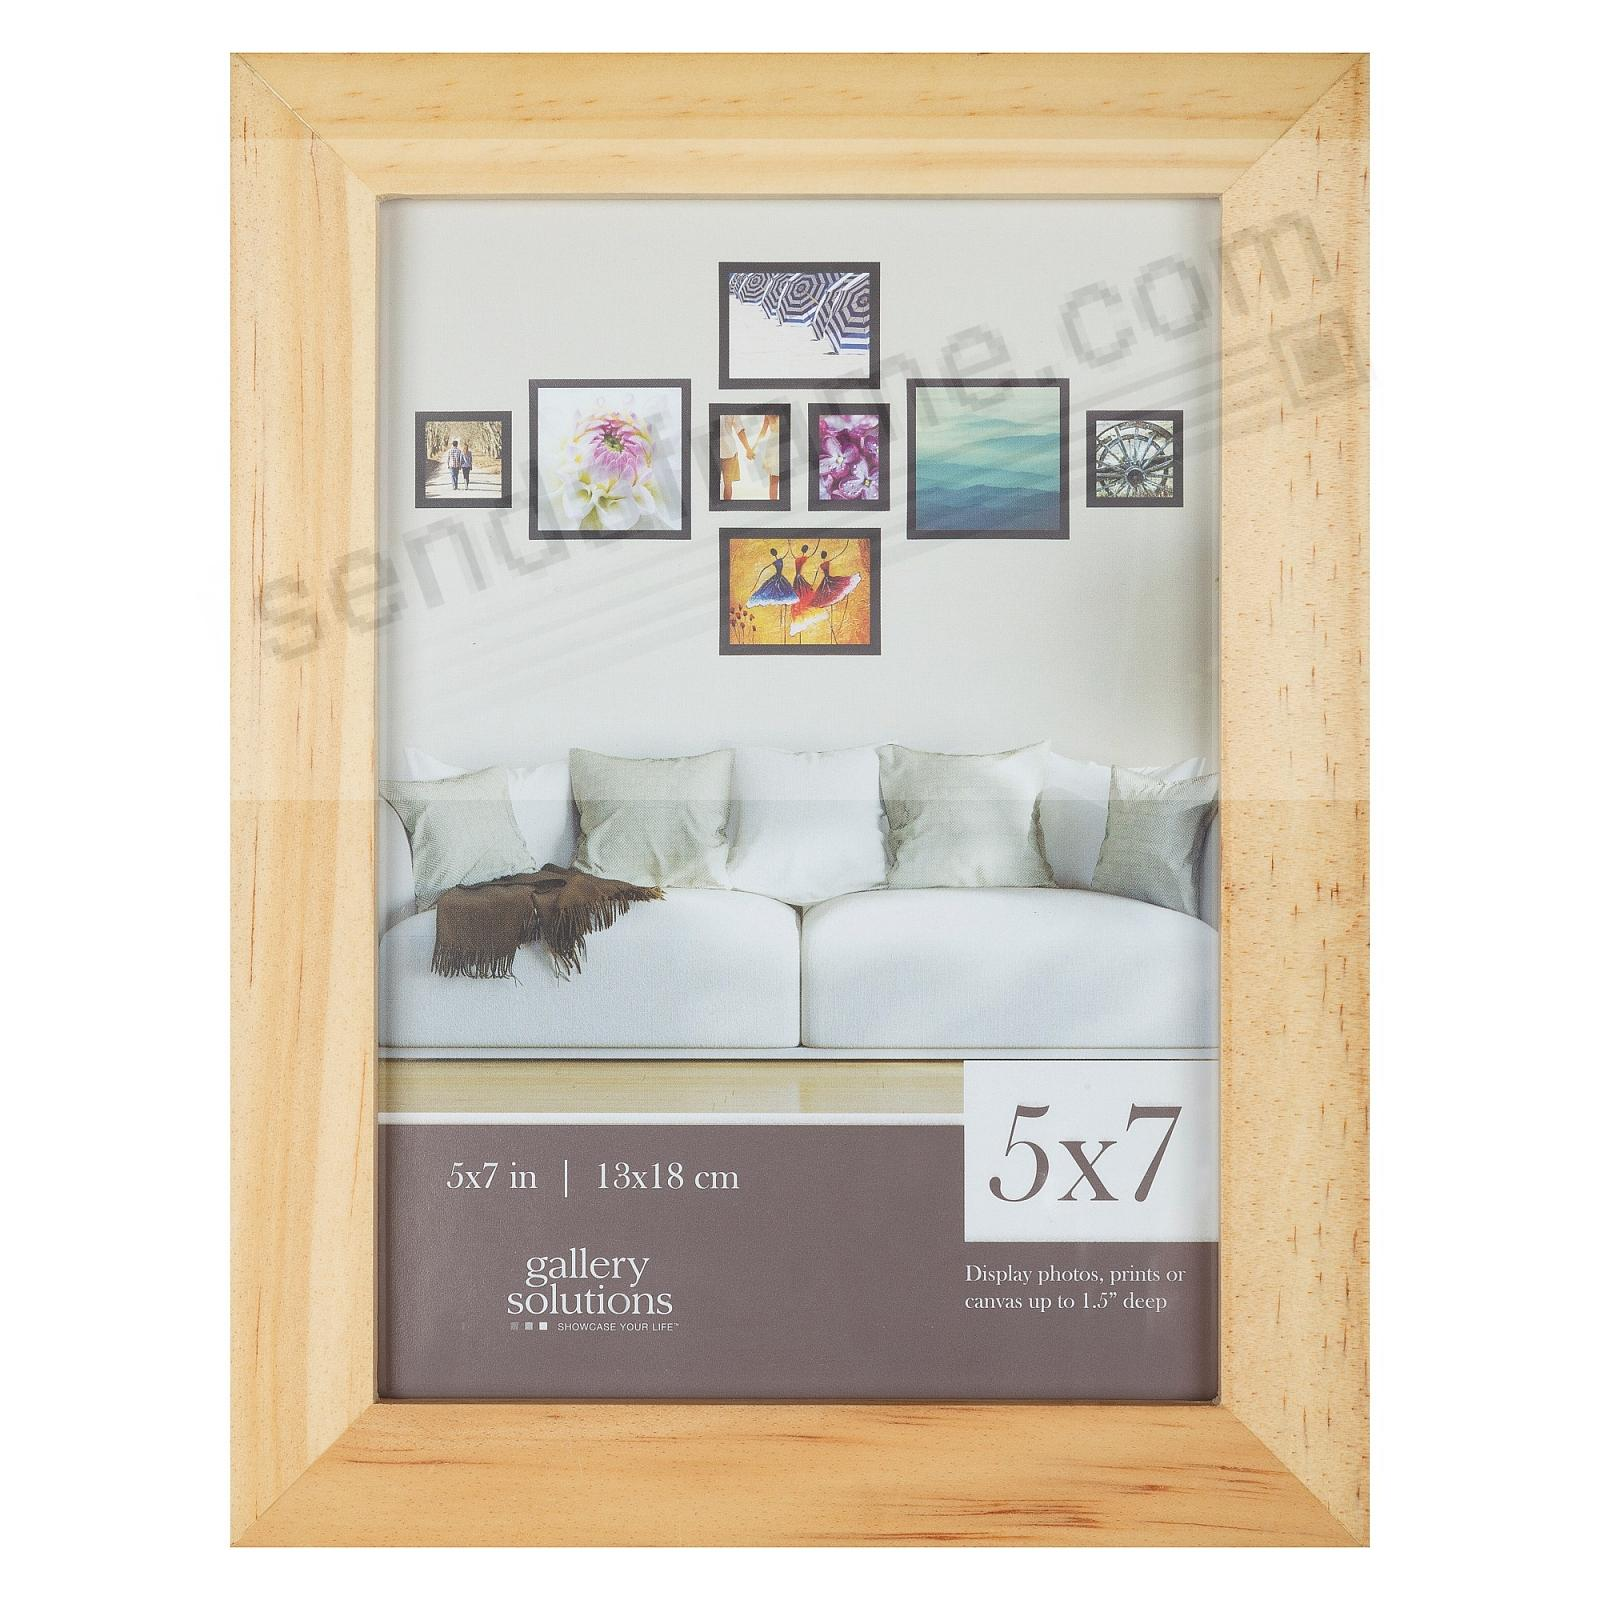 NATURAL GALLERY 5x7 frame by Gallery Solutions®